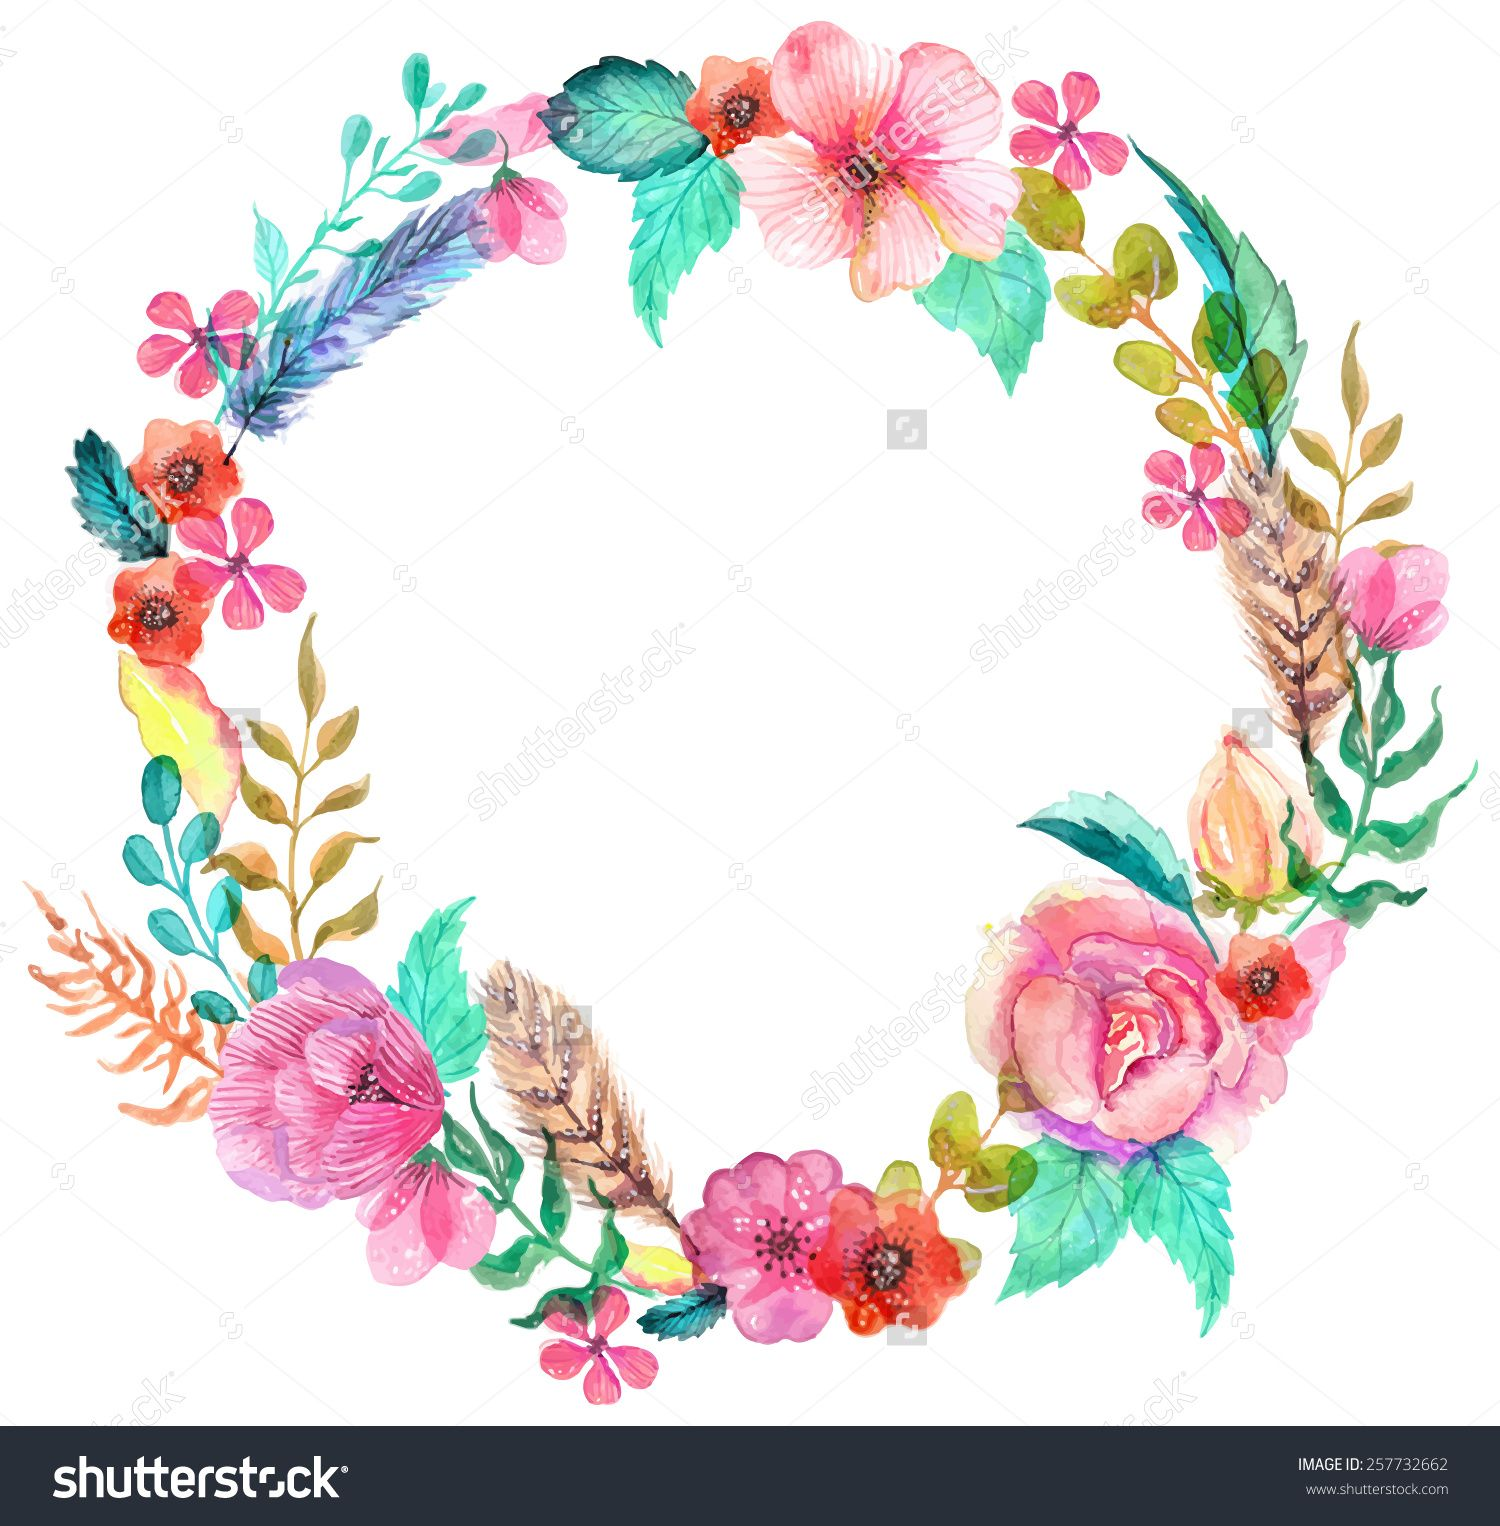 Flower Watercolor Wreath For Beautiful Design Stock Photo